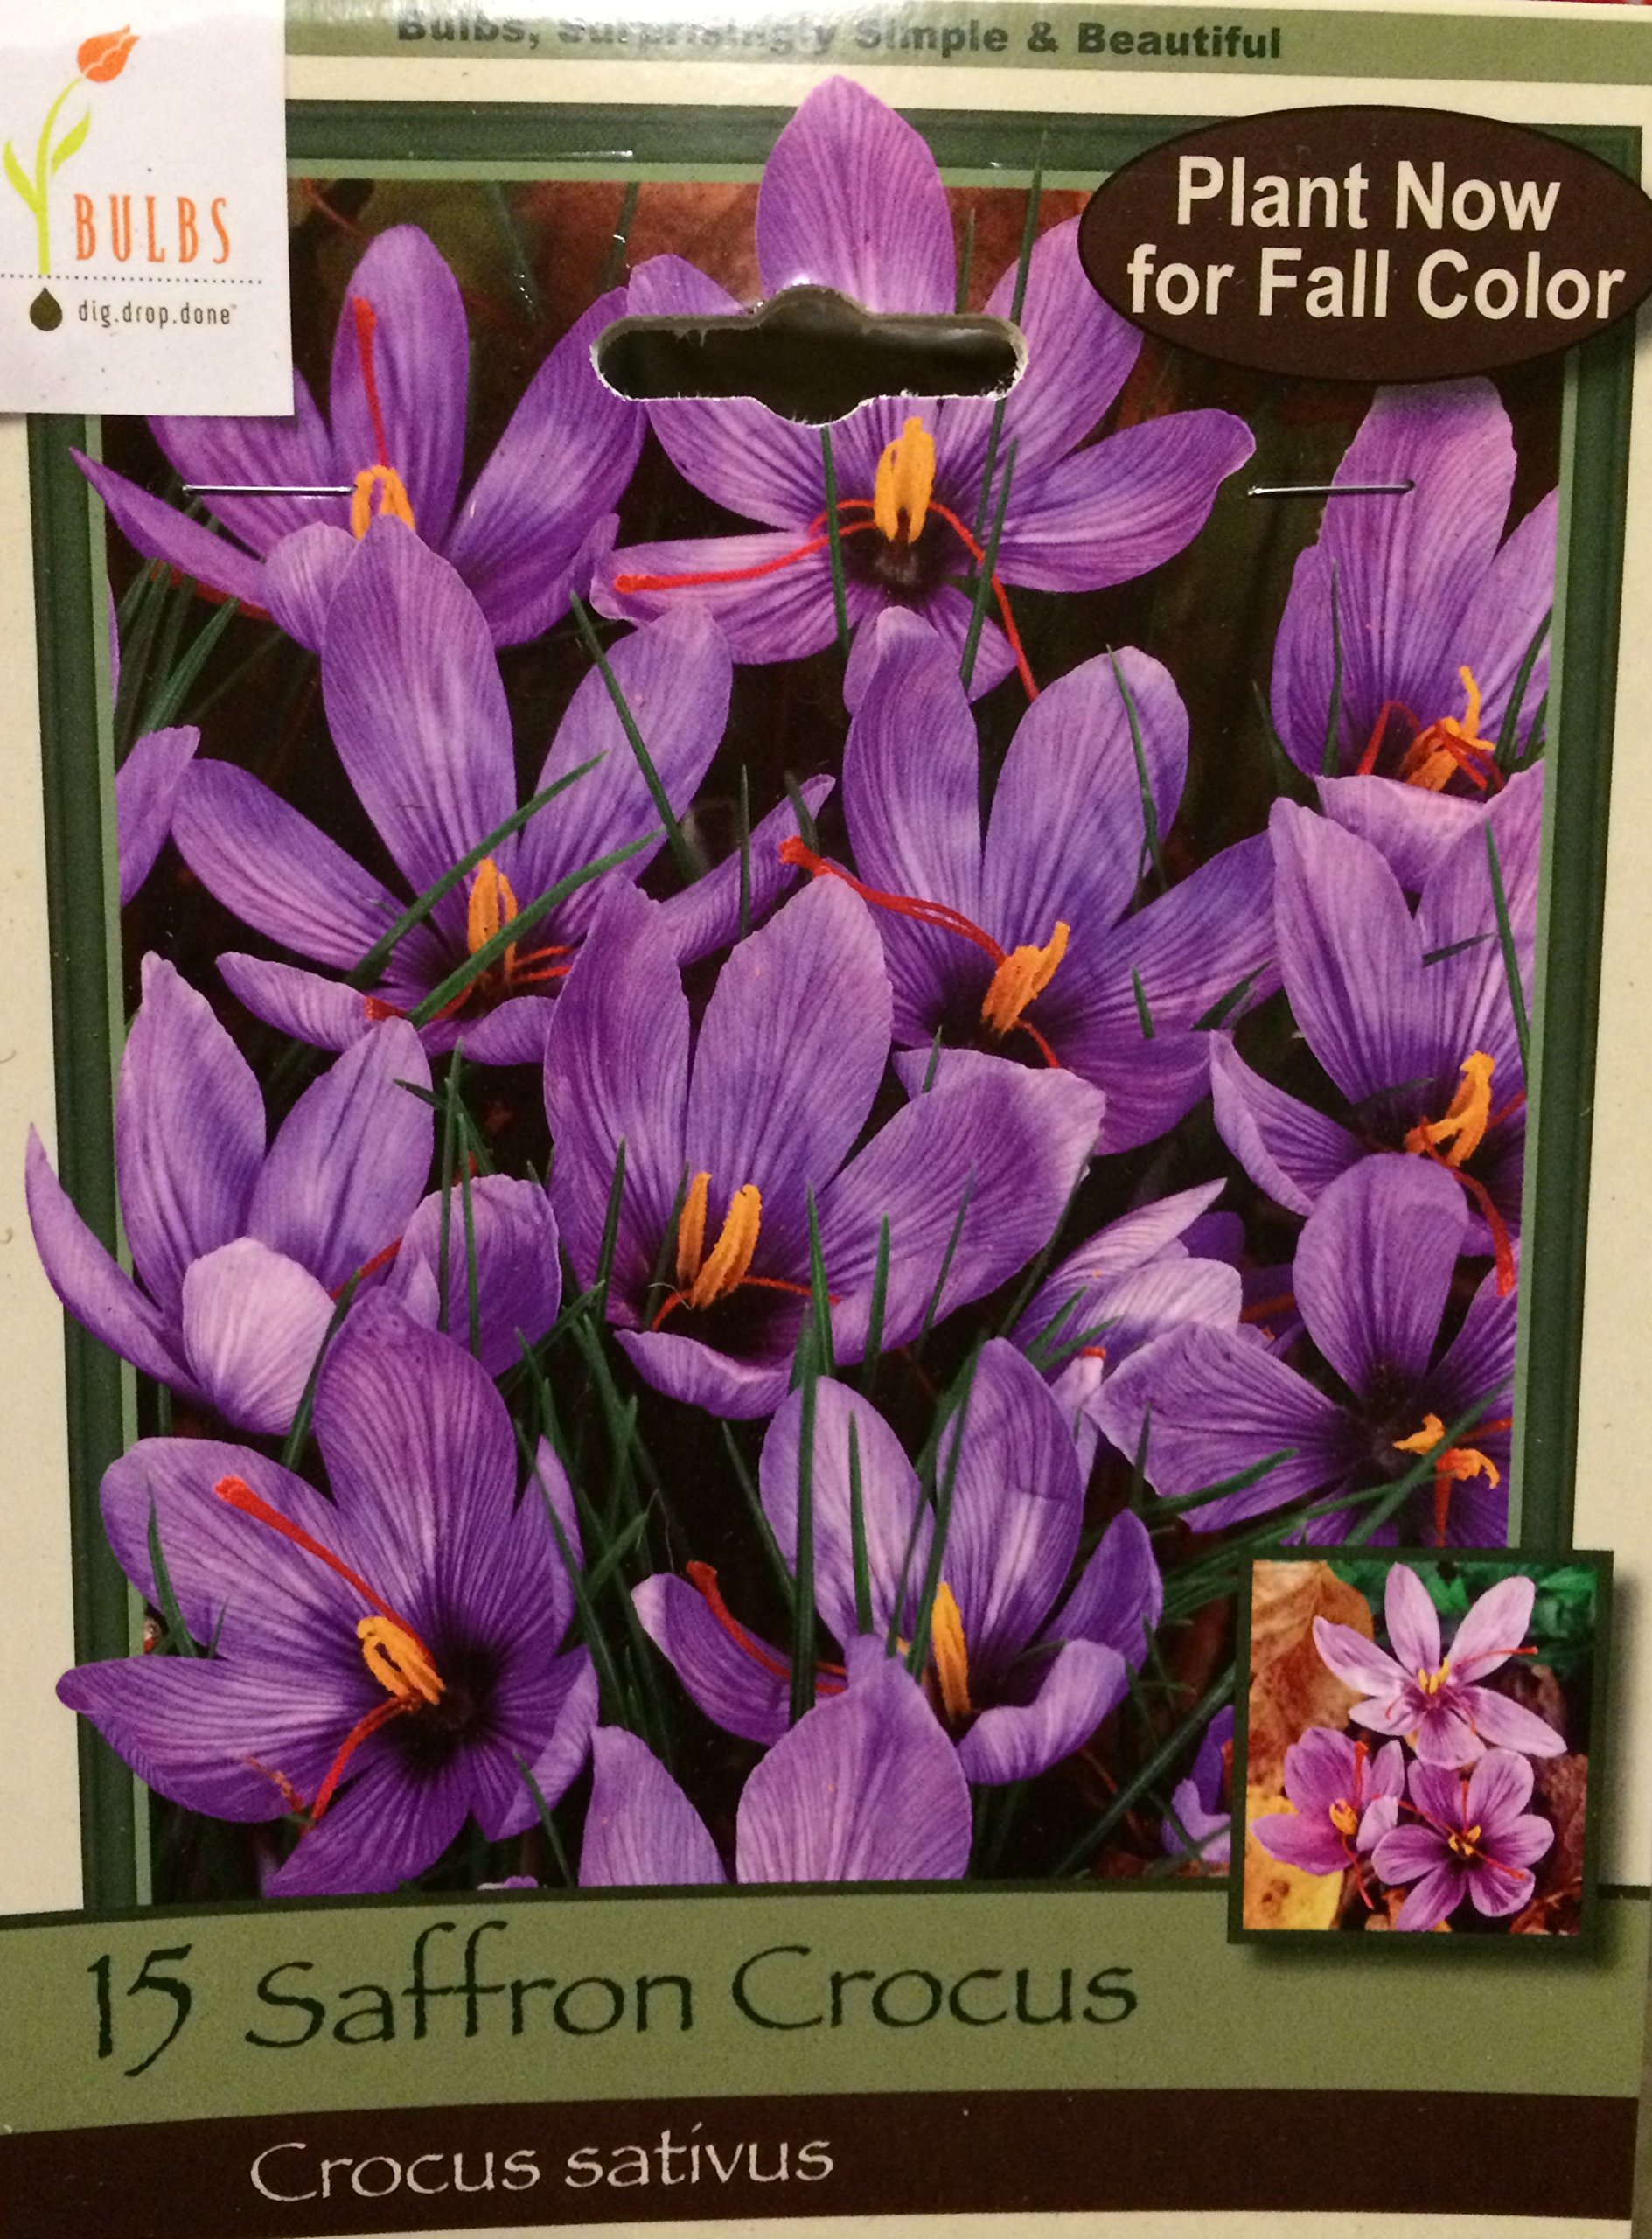 15 JUMBO Saffron Crocus Corms/Bulbs ~ FALL blooming ~ RARE SPICE ~ crocus sativus